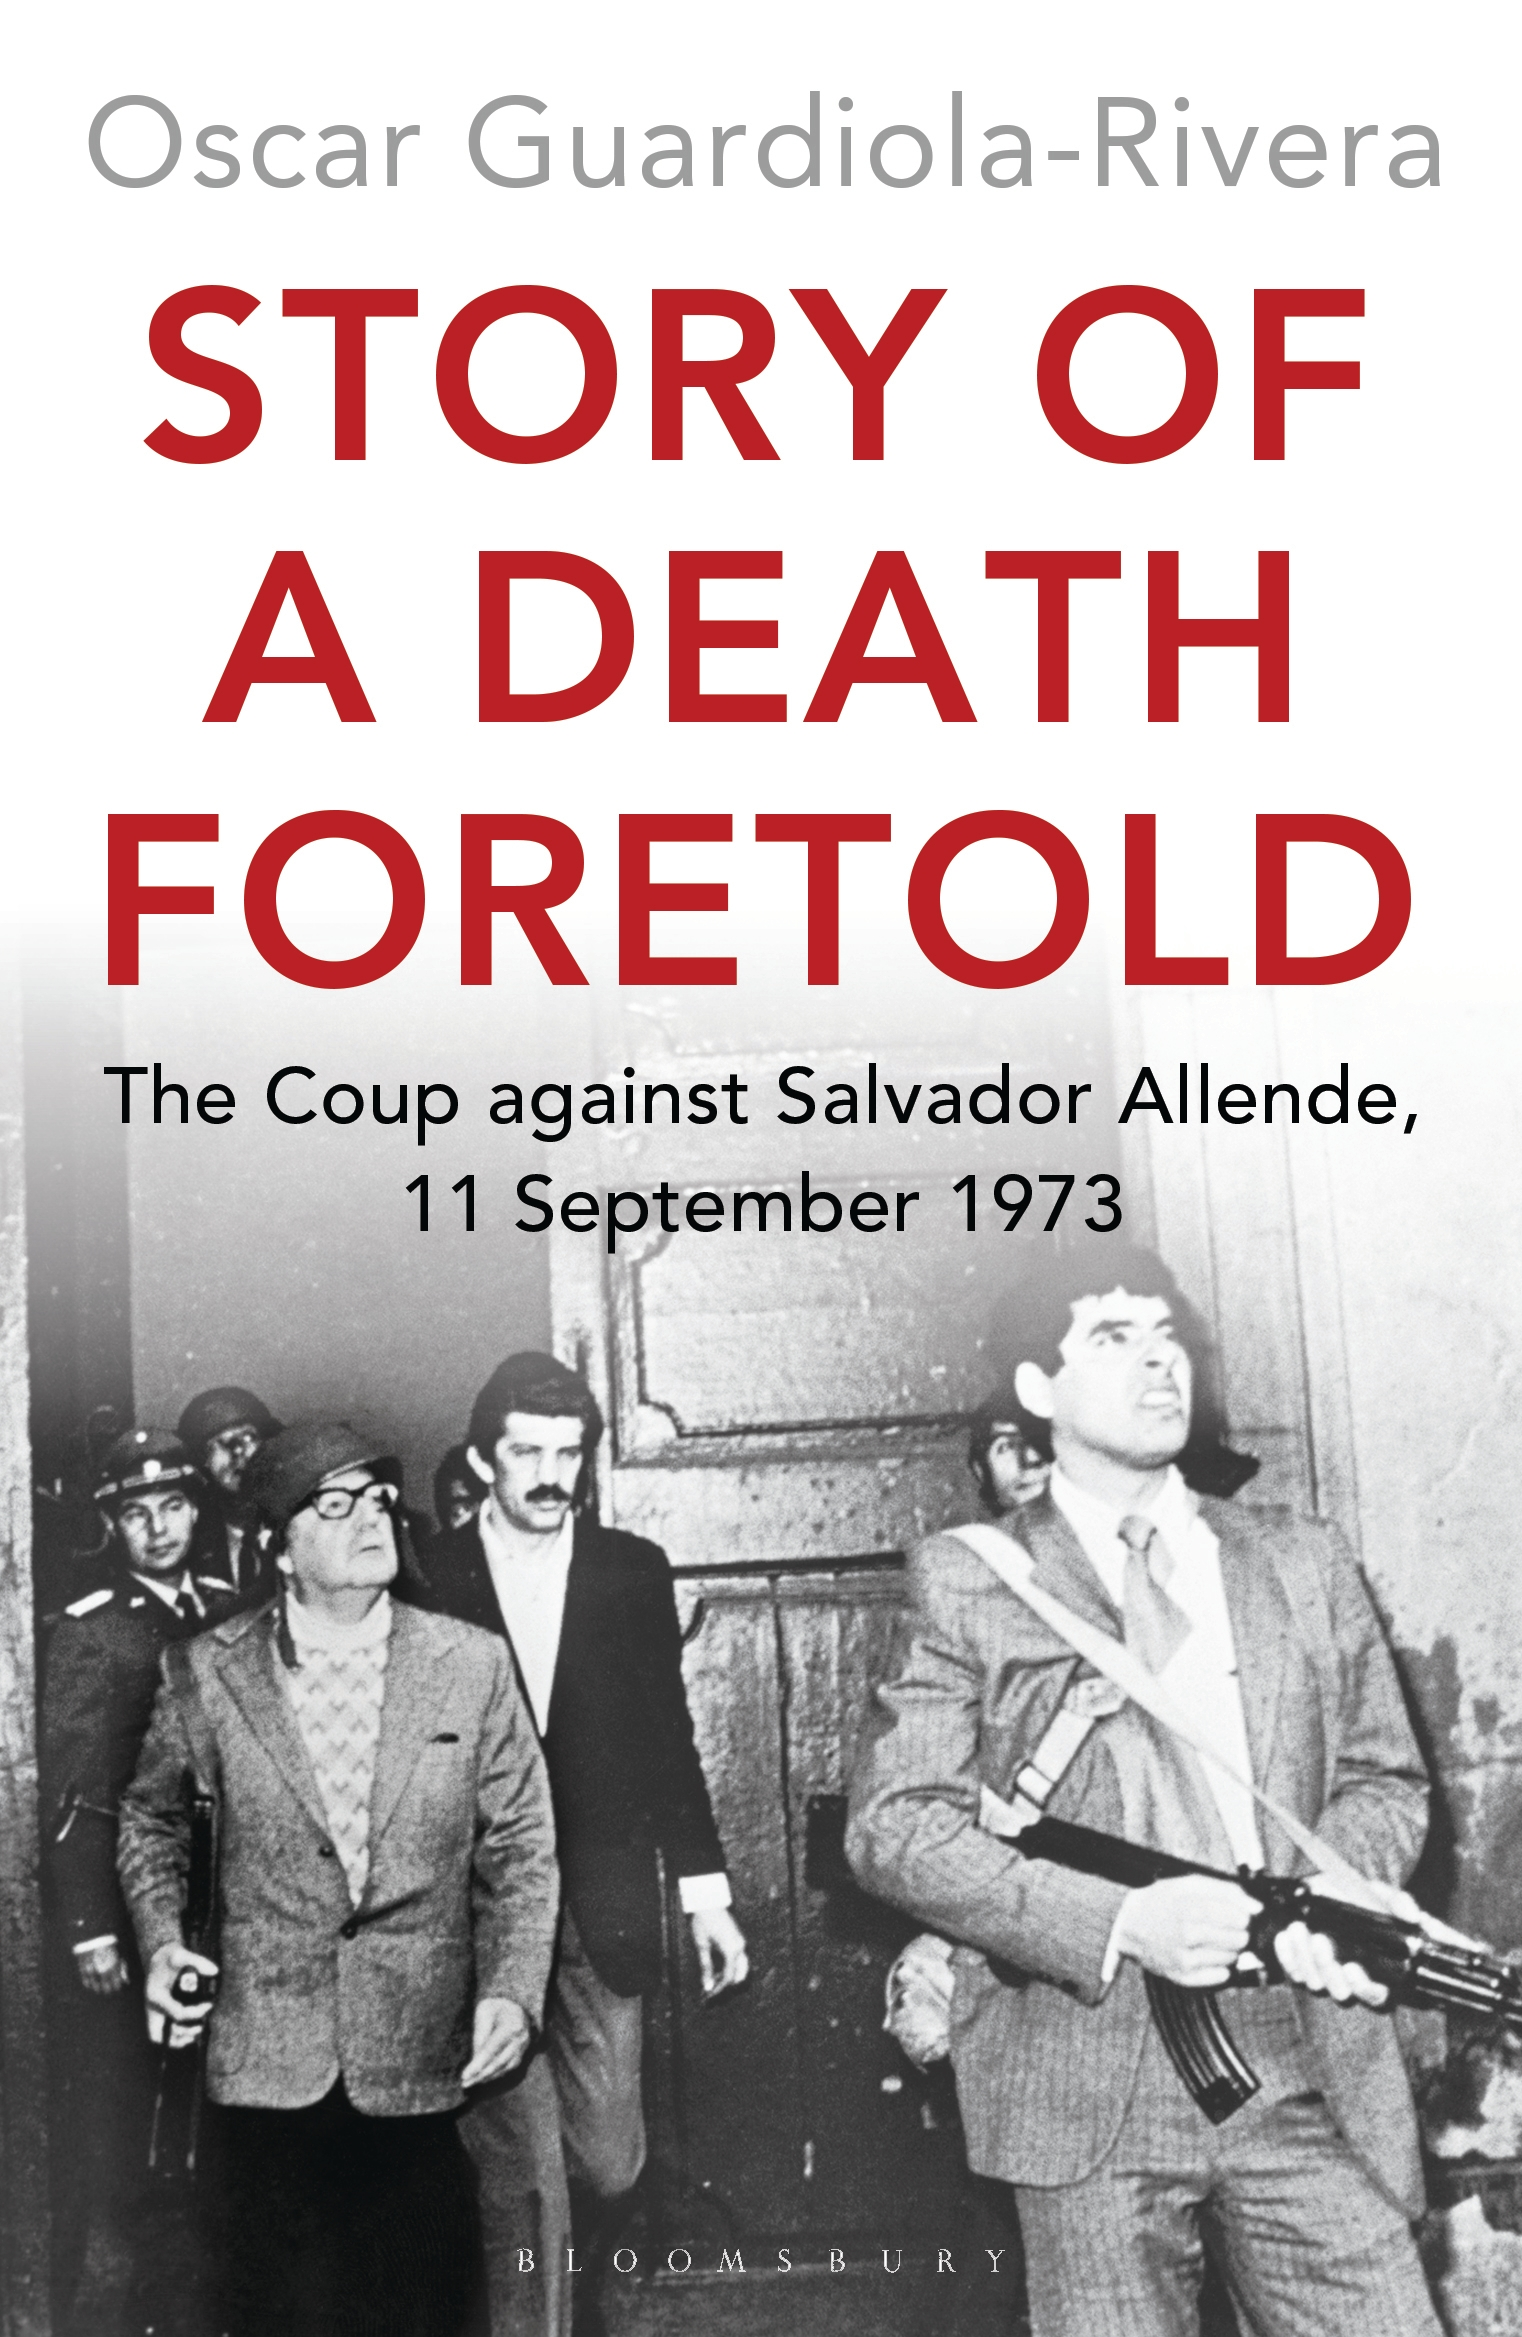 Story of a Death Foretold The Coup against Salvador Allende, 11 September 1973